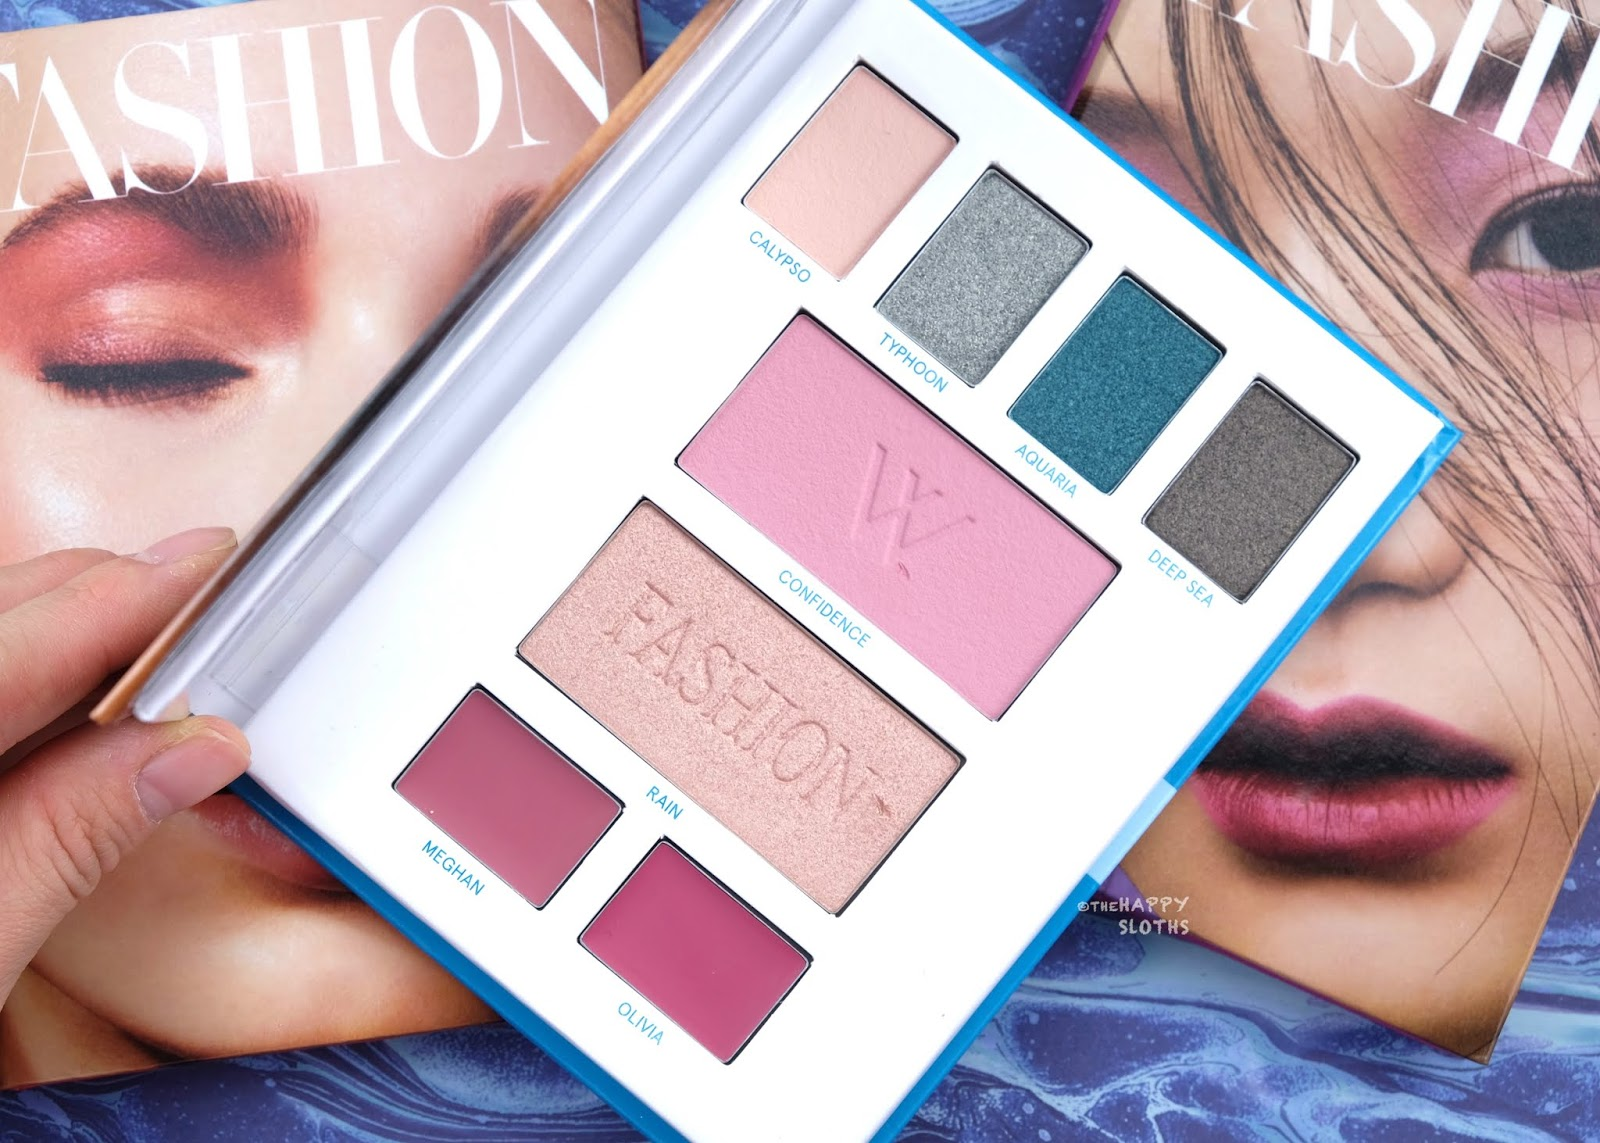 Lise Watier | Watier x Fashion Go with the Flow Palette: Review and Swatches